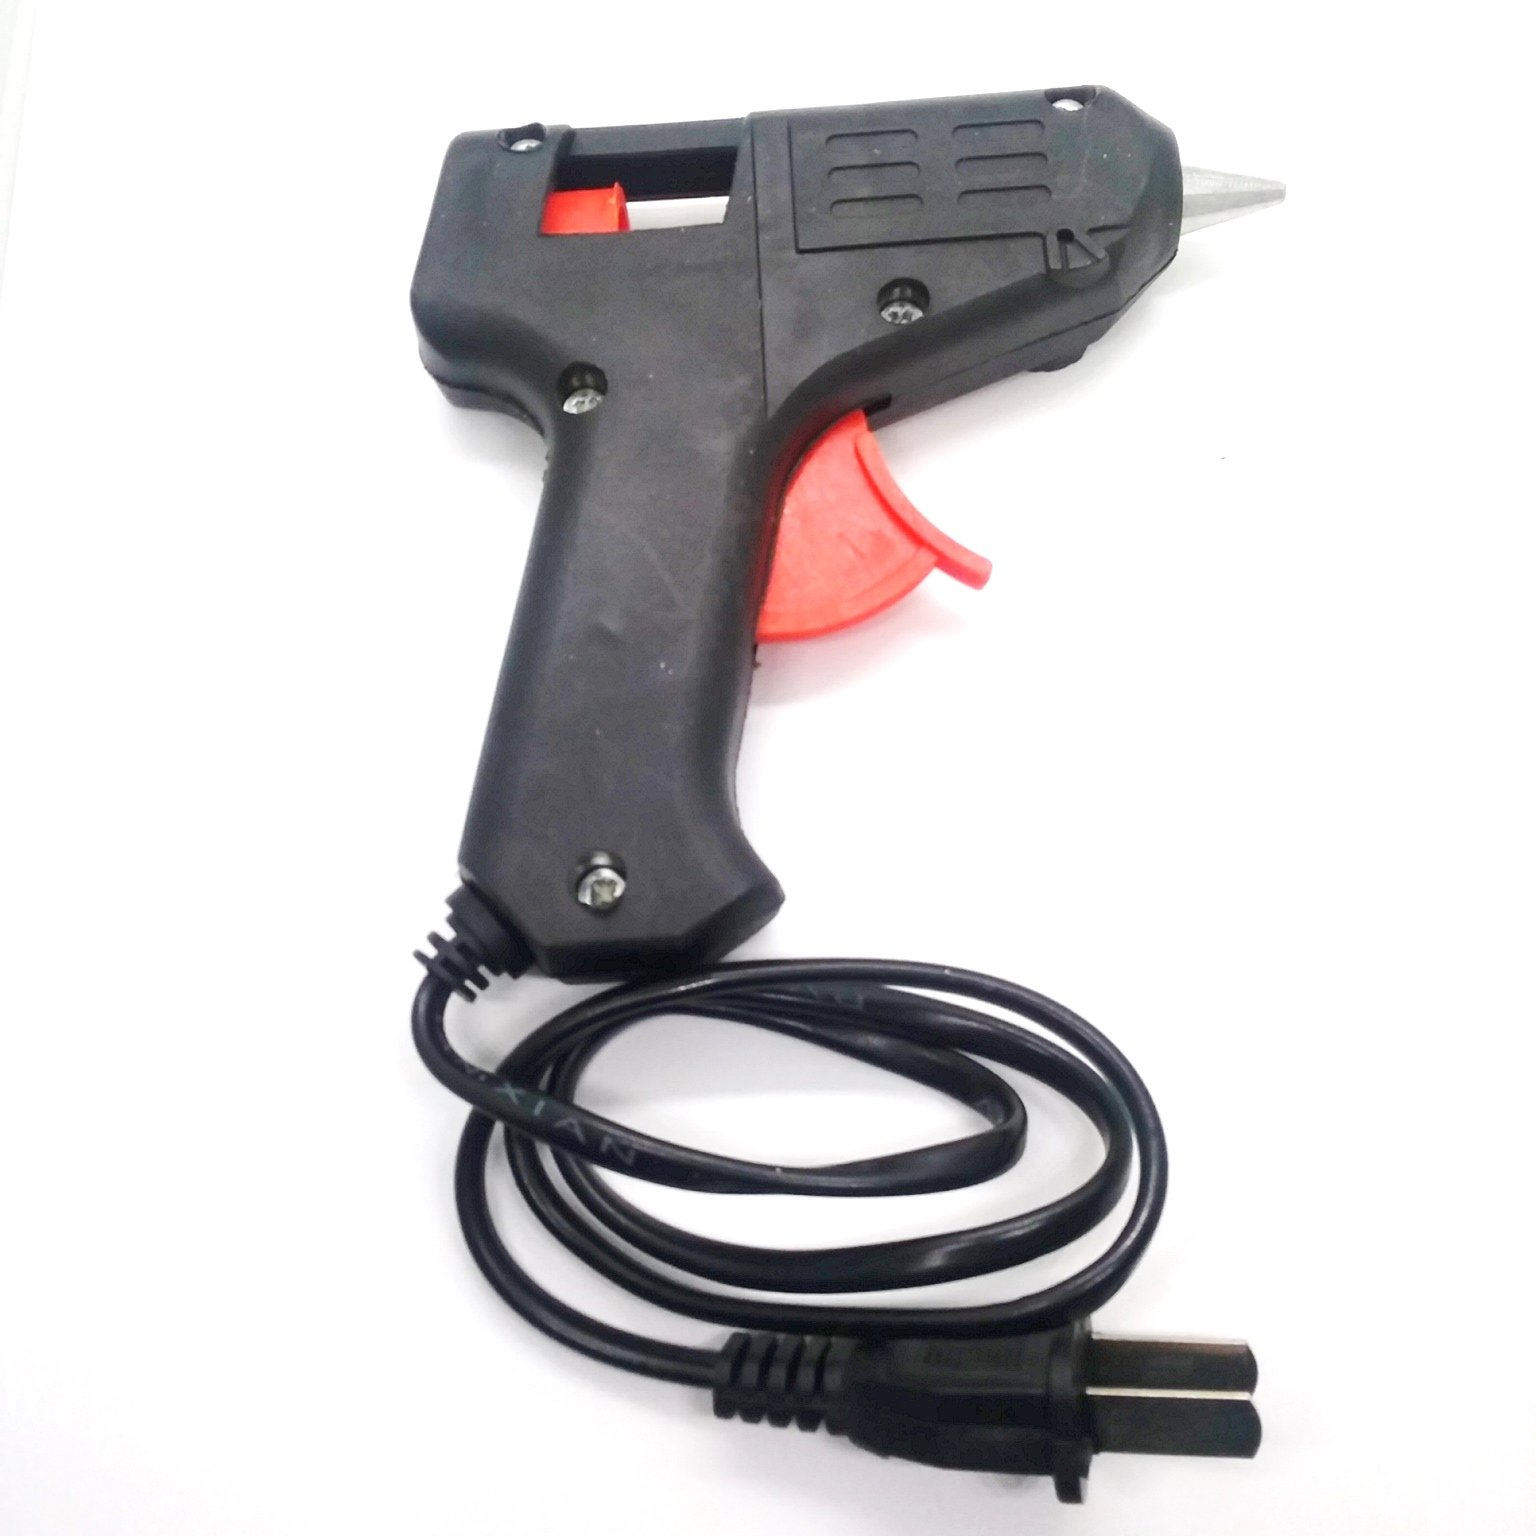 Chachlili Mini Hot Melt Glue Gun For DIY, Craft Projects Arts & Crafts Sealing And Quick Repairs Bulk Pack (100 Pieces)